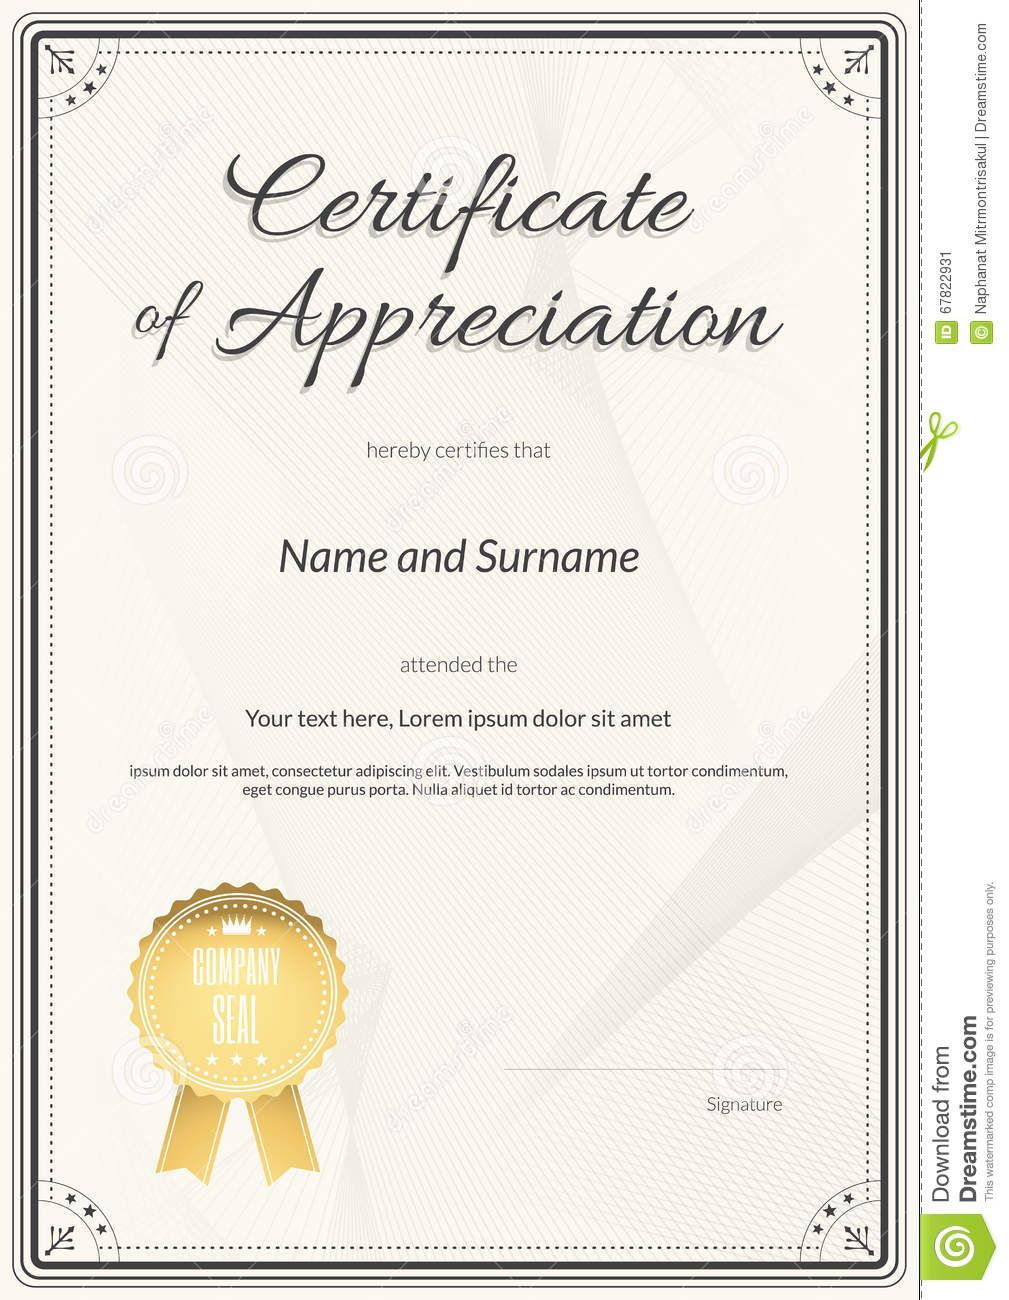 Certificate Of Appreciation Template In Vector Stock Vector Within Certif Certificate Of Achievement Template Certificate Of Appreciation Certificate Templates Army certificate of appreciation template ppt